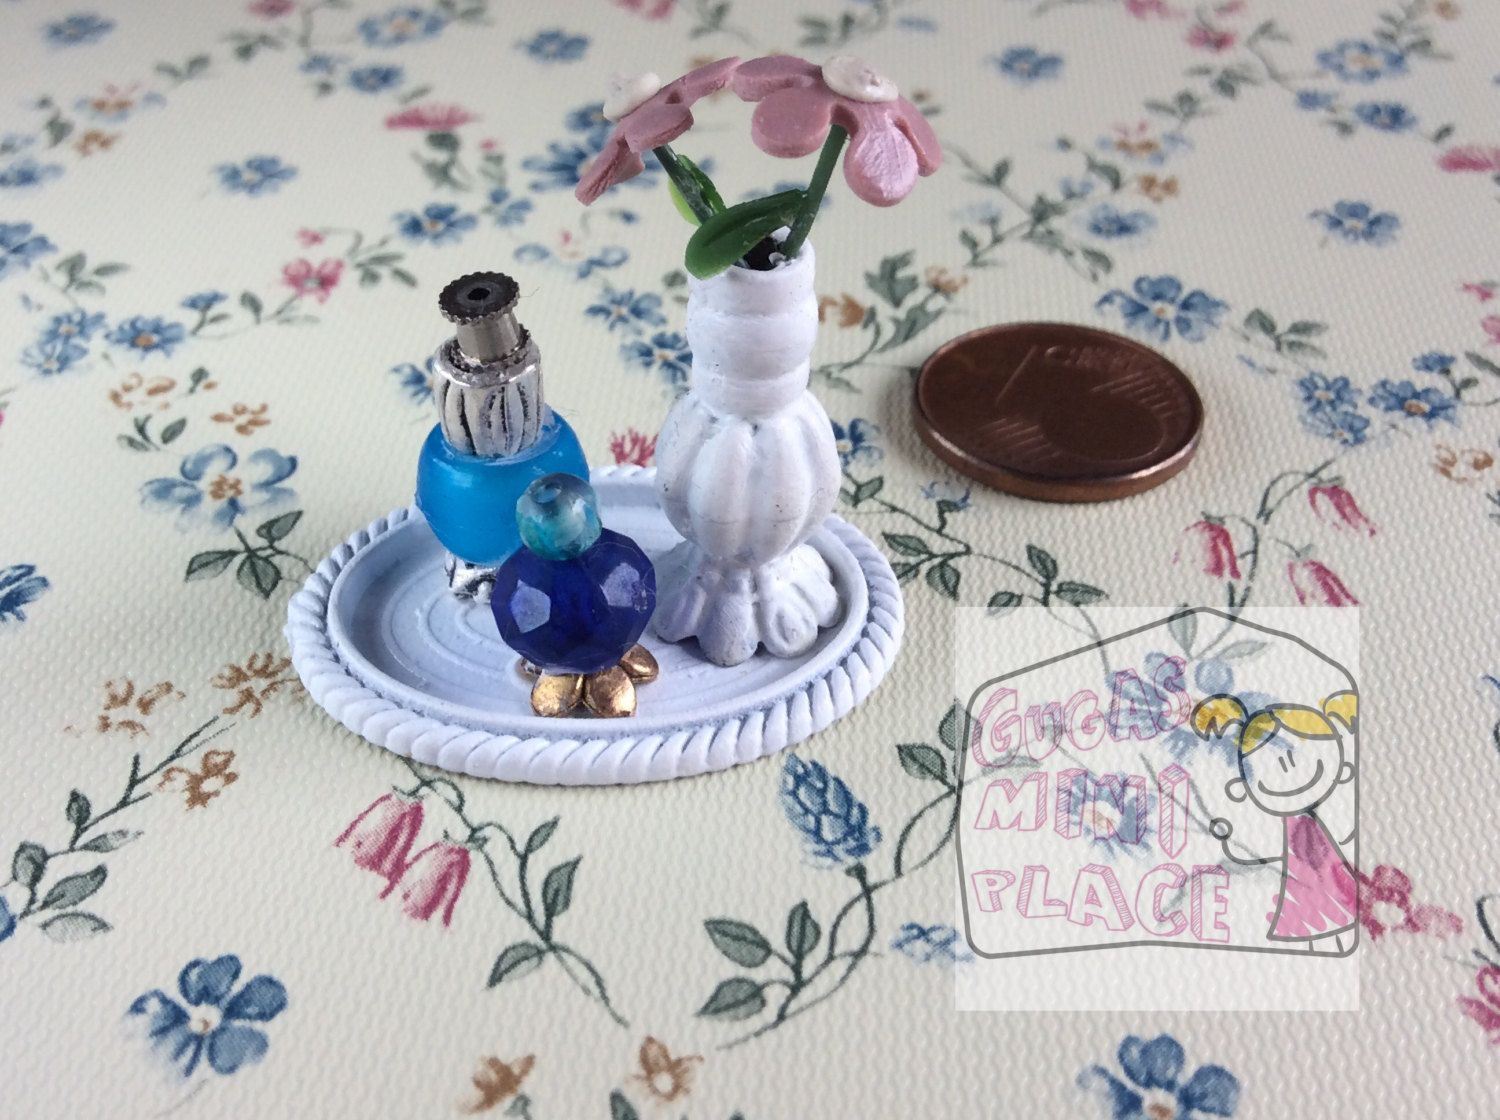 Miniature Vanity Tray pink Flowers in vase Dollhouse Perfume 1:12 Scale  Handmade Dollhouse Decor Supplies by GugasMiniPlace on Etsy